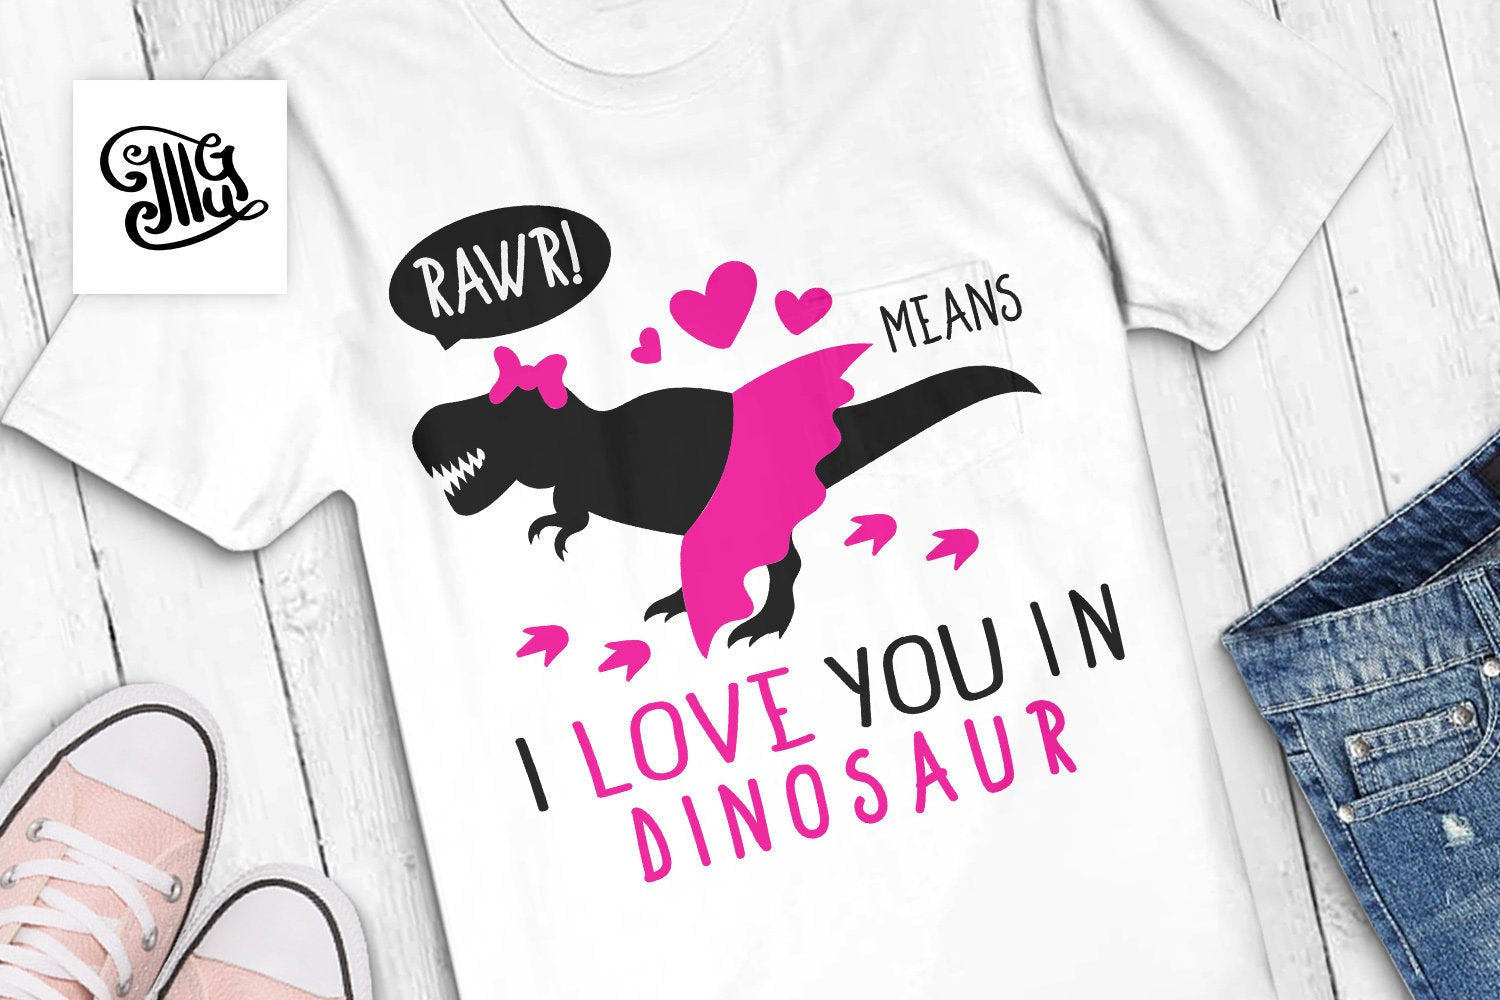 Rawr means I love you in dinosaur svg, girl dinosaur svg, dinosaur svg, cute dinosaur svg, girl trex svg, dinosaur with bow svg,-by Illustrator Guru